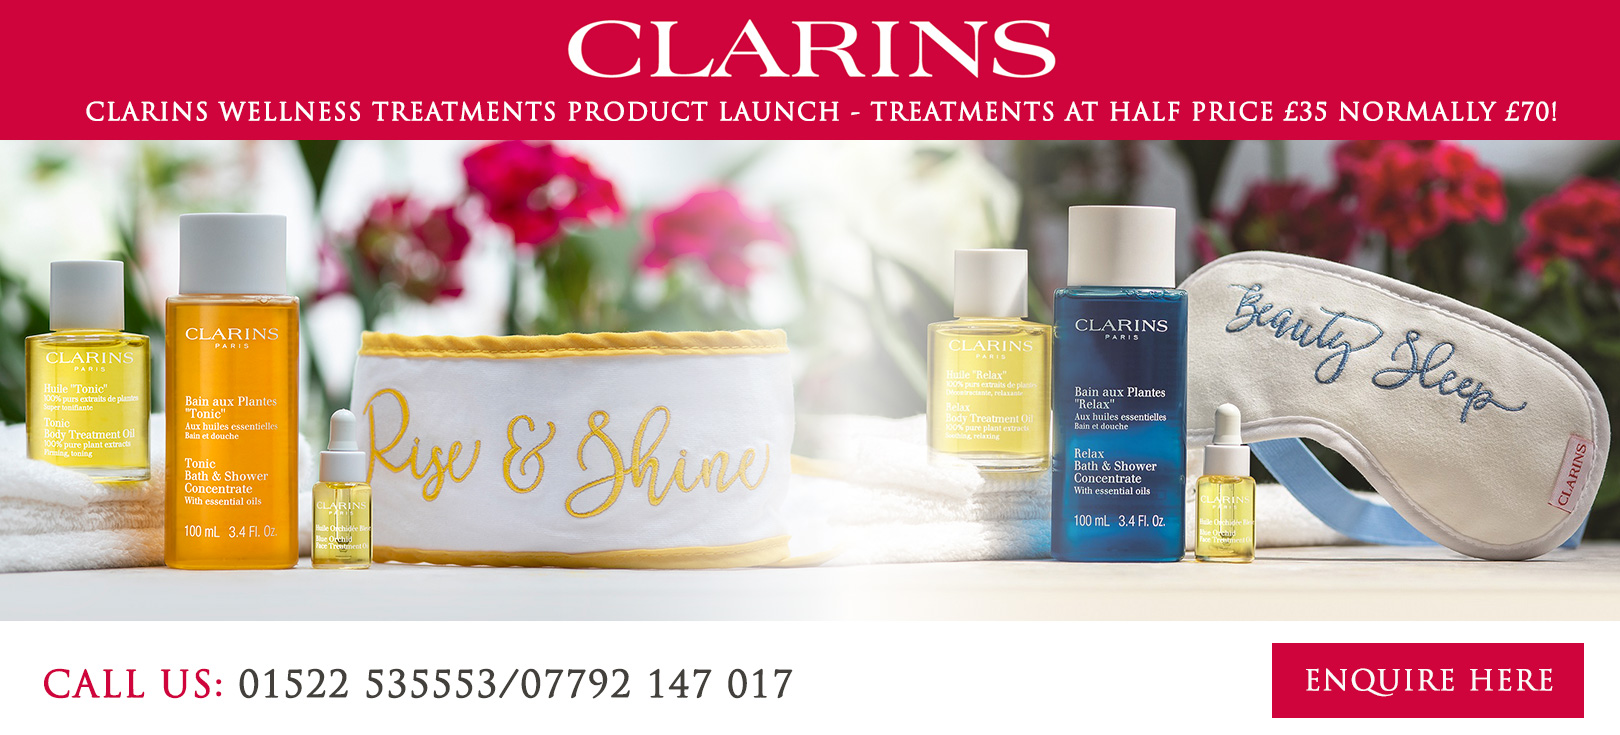 larins-wellness-treatments-launch-slide